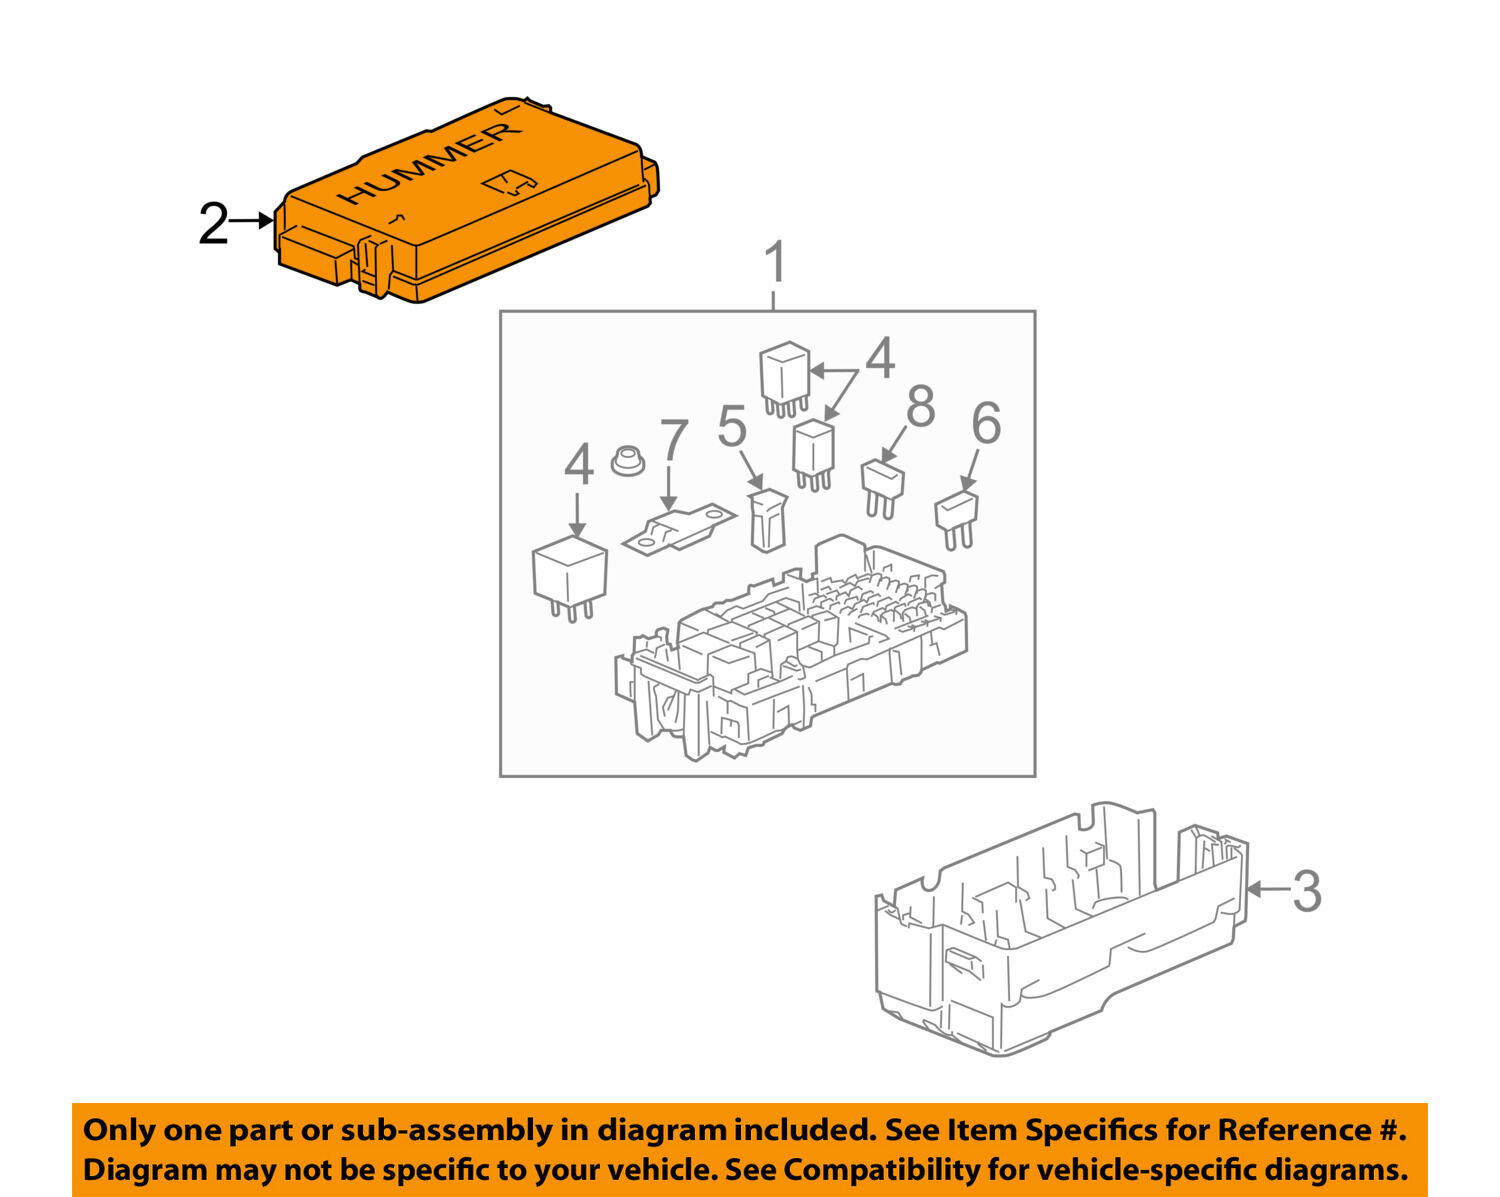 Hummer Gm Oem 2006 H3 35l L5 Fuse Relay Box Upper Cover 15844337 06 1 Of 2only 3 Available